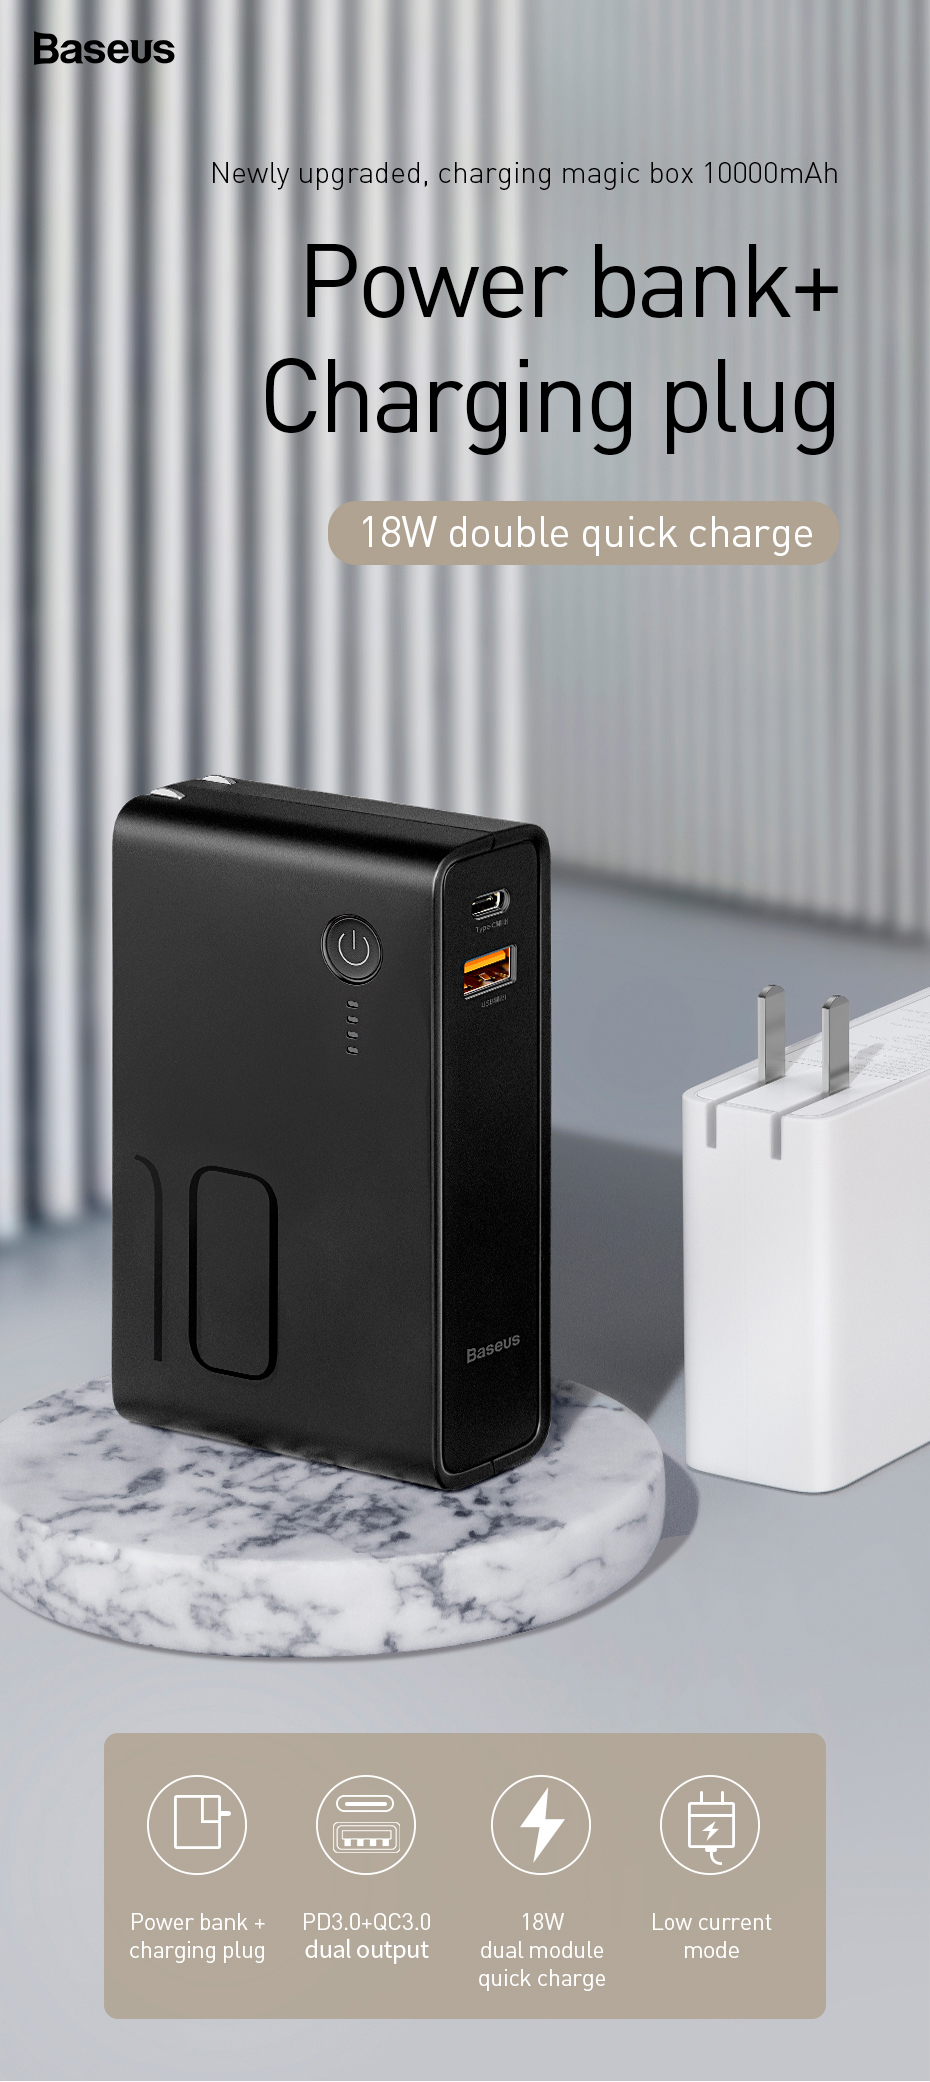 Power station 2*1 Wall Charger + 10,000mAh Power Bank 18w QC3.0 + ...